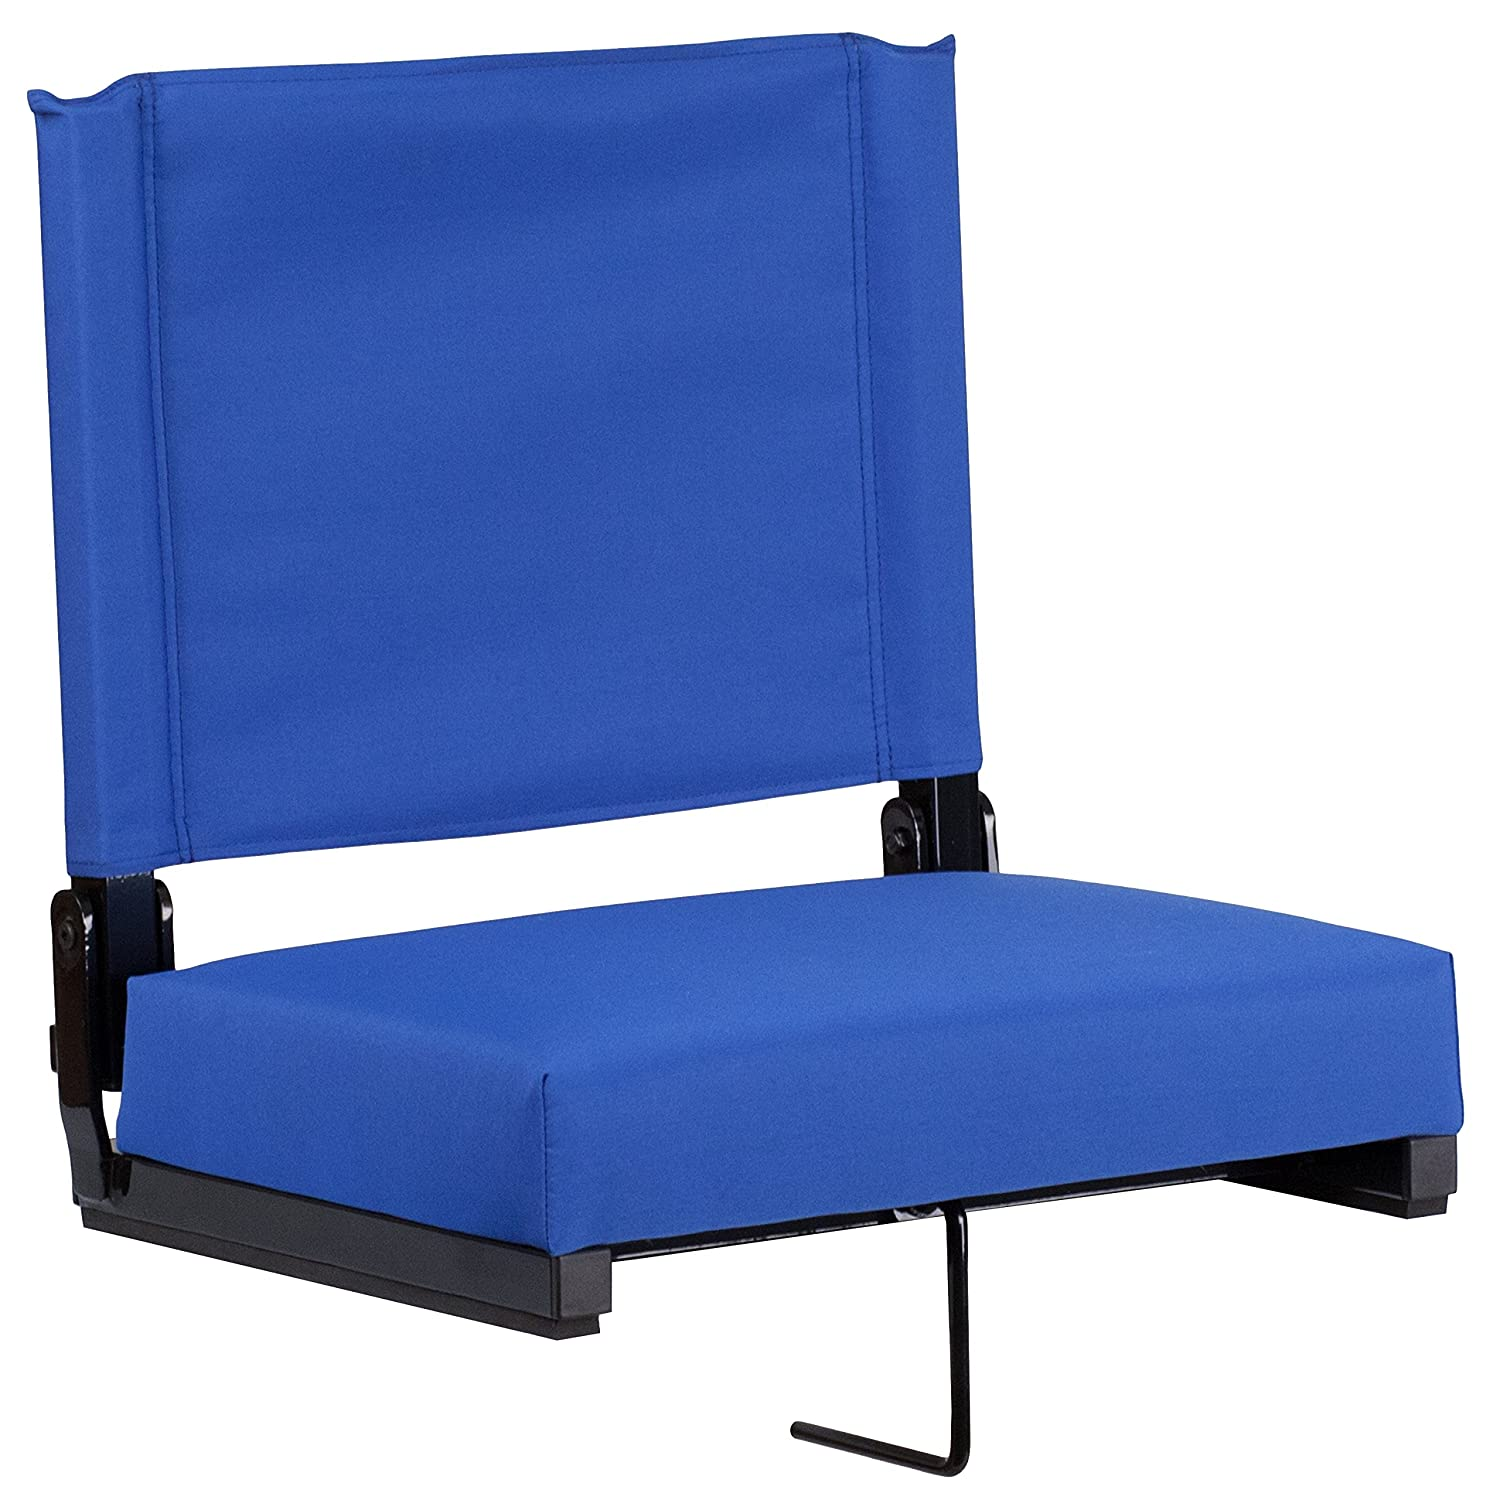 Amazon.com: Flash Furniture Grandstand Comfort Seats By Flash With  Ultra Padded Seat In Blue: Kitchen U0026 Dining